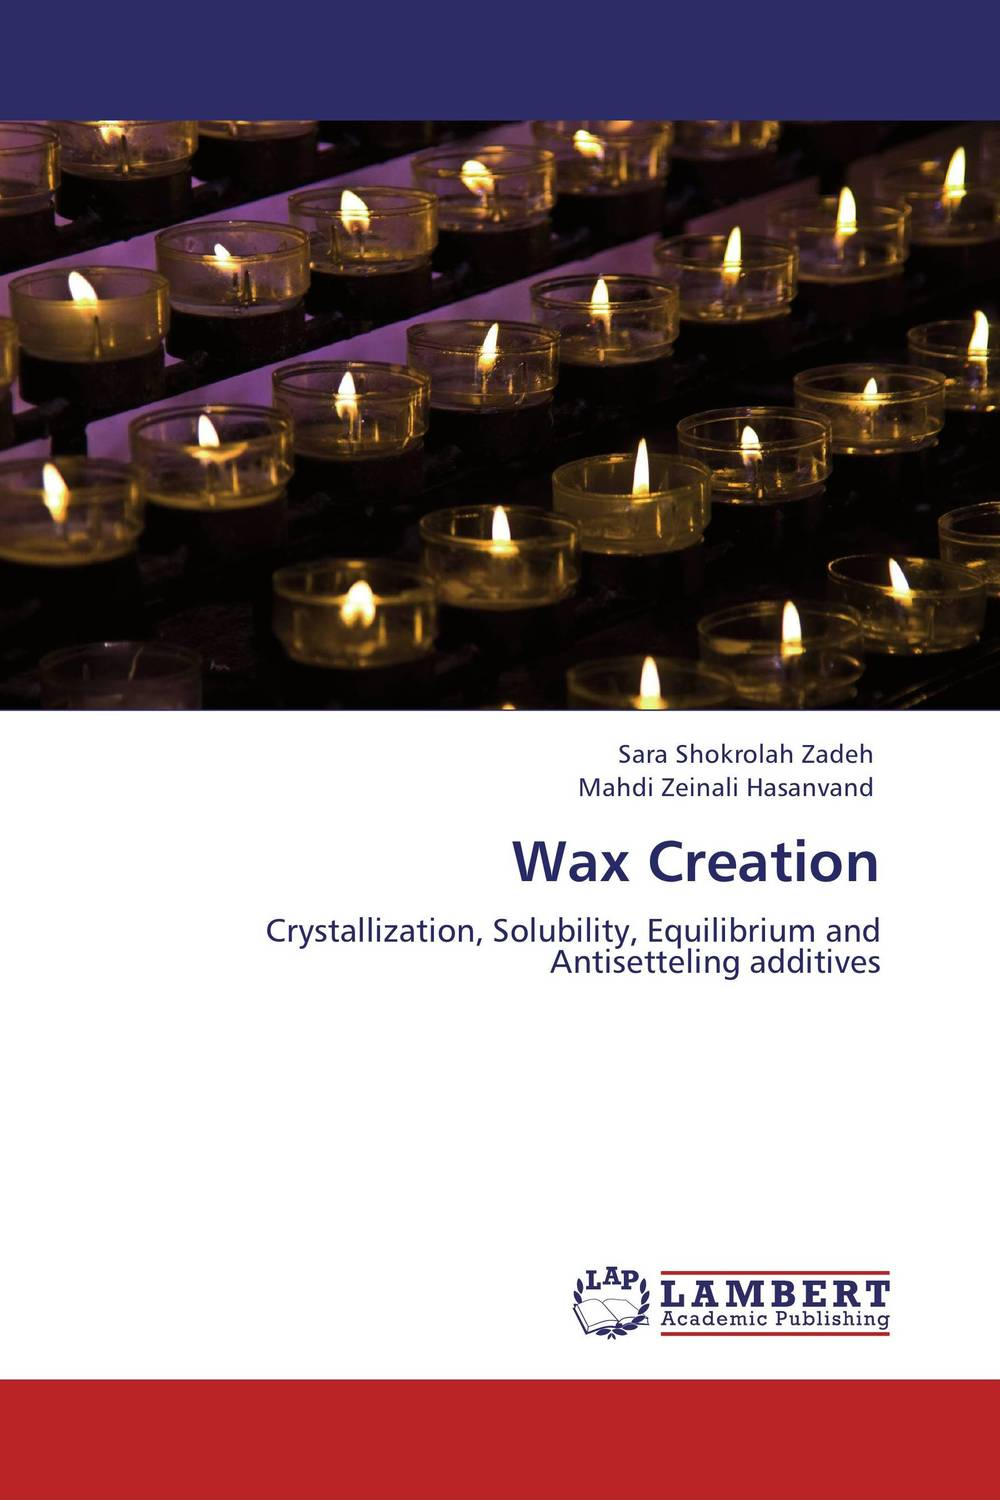 Wax Creation dearomatization of crude oil